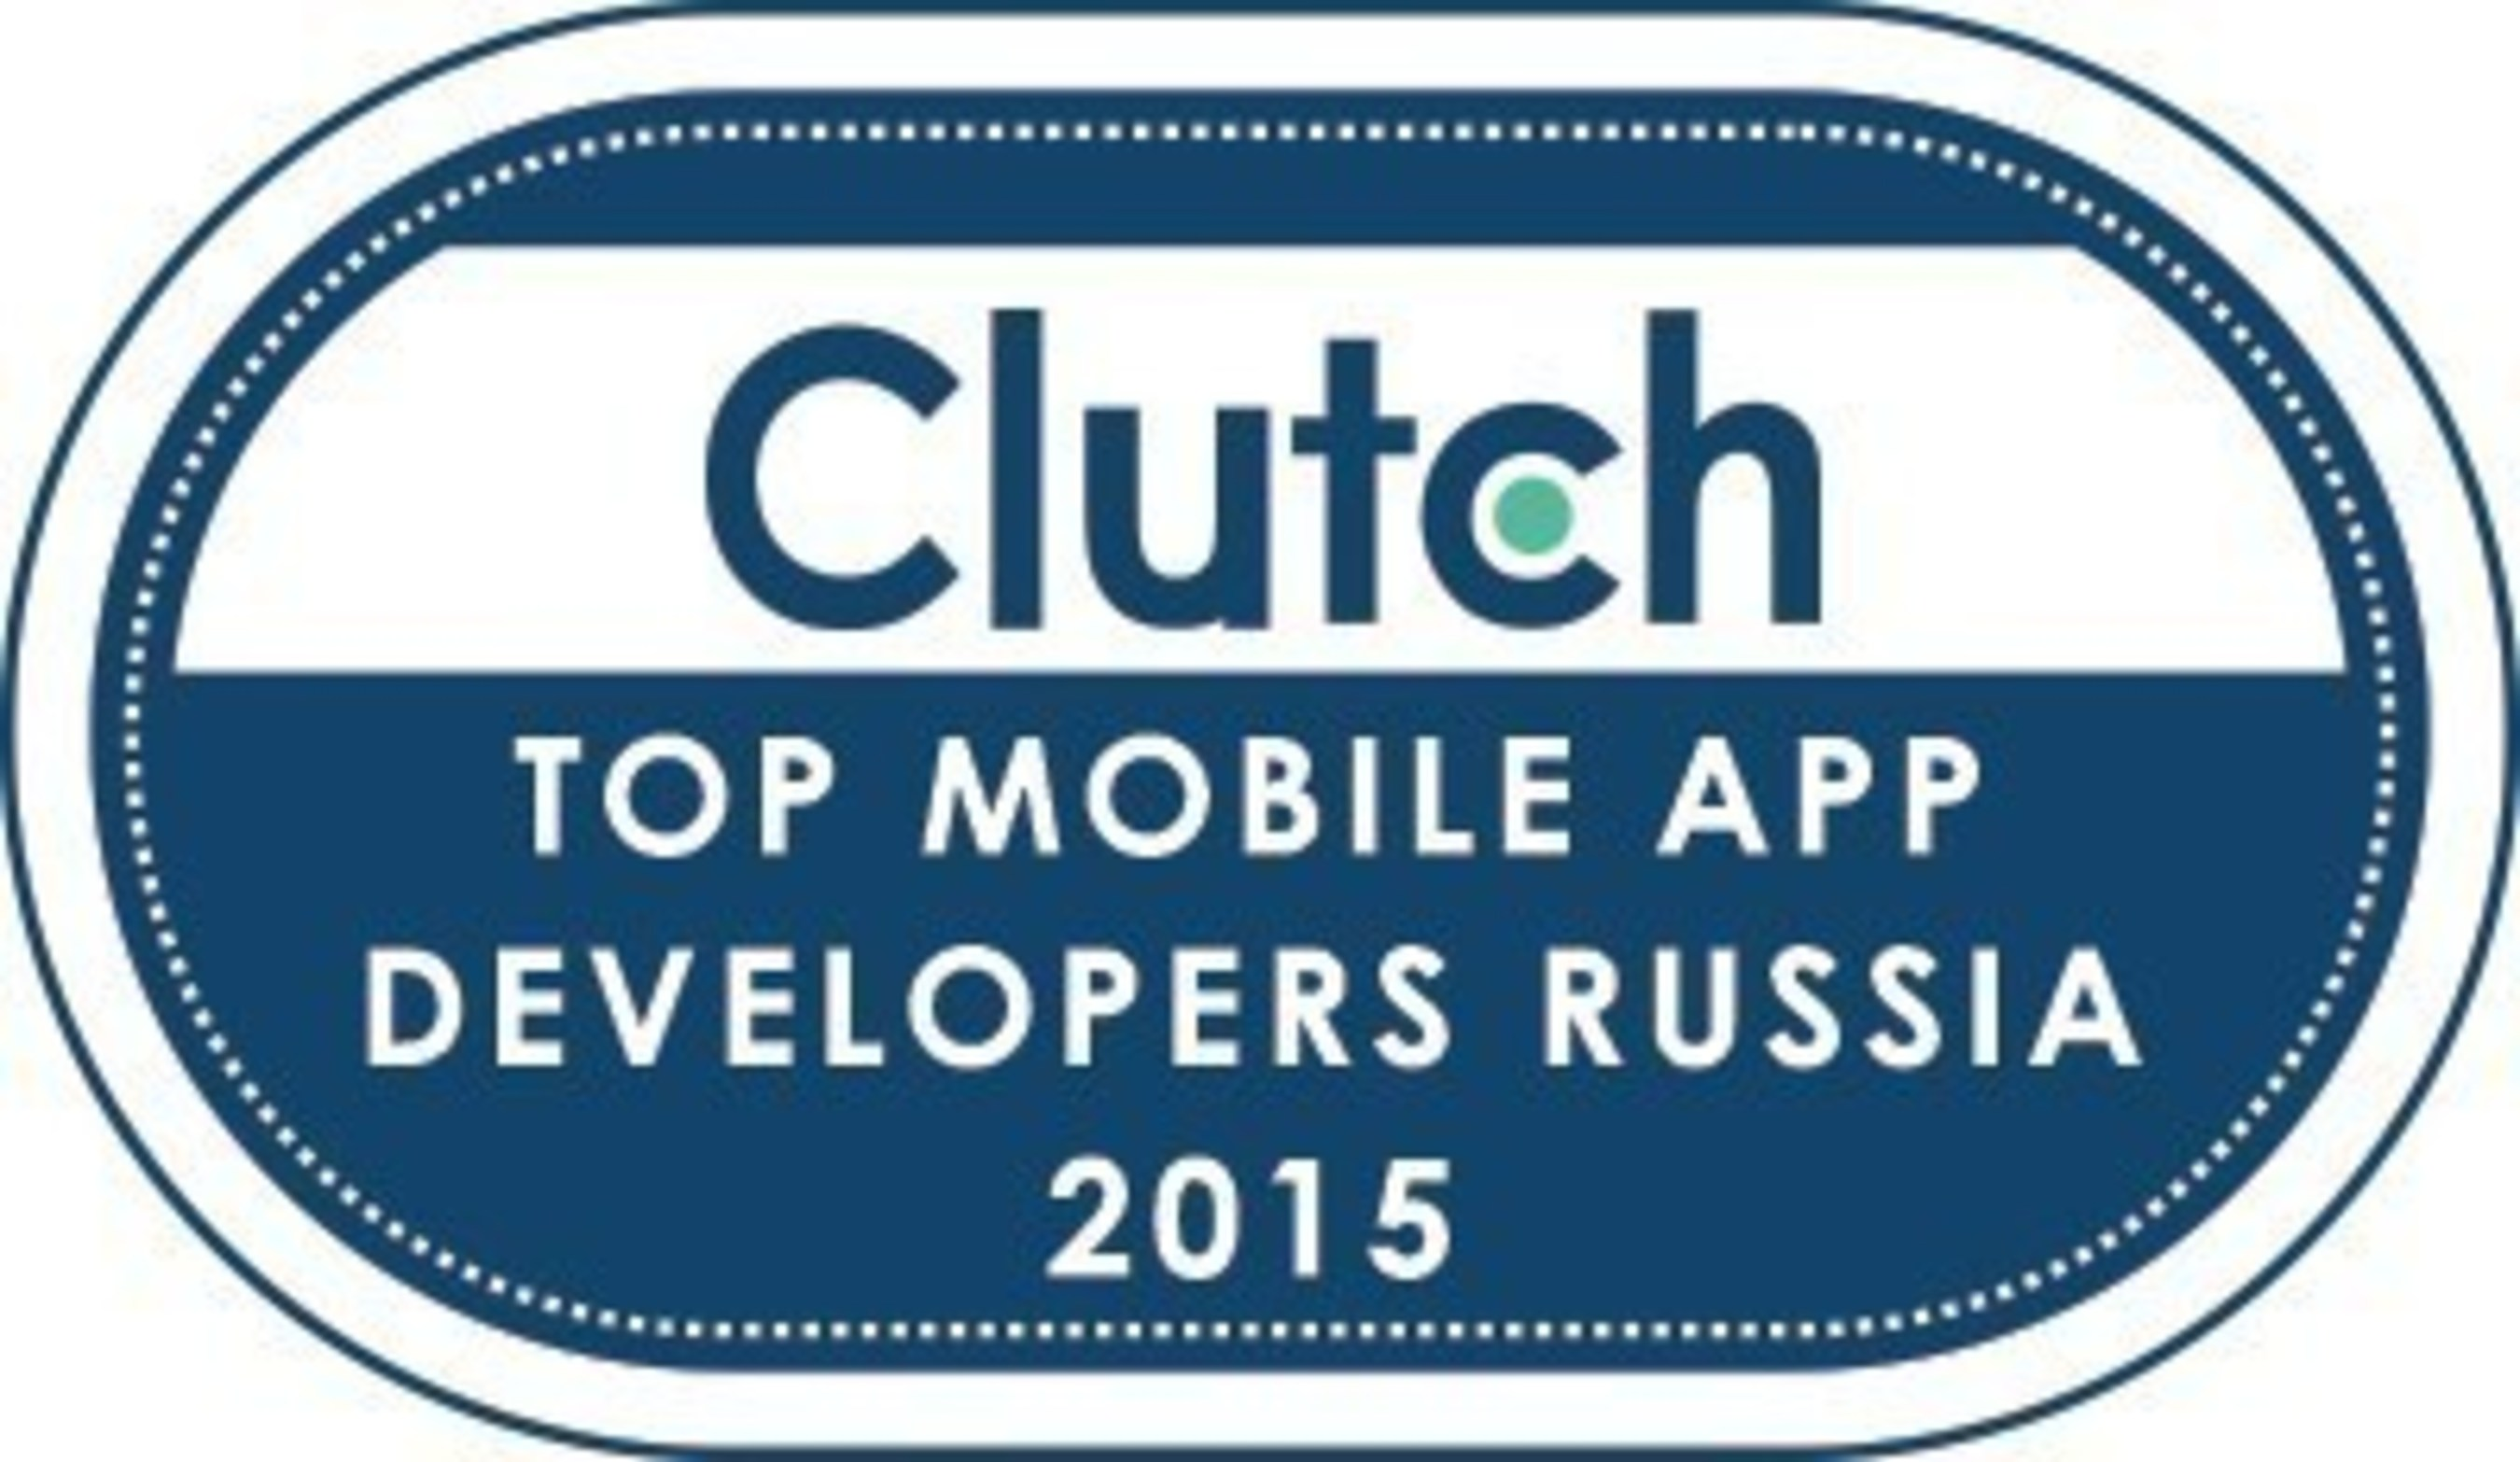 Research Firm Clutch Publishes List of Top App Developers in